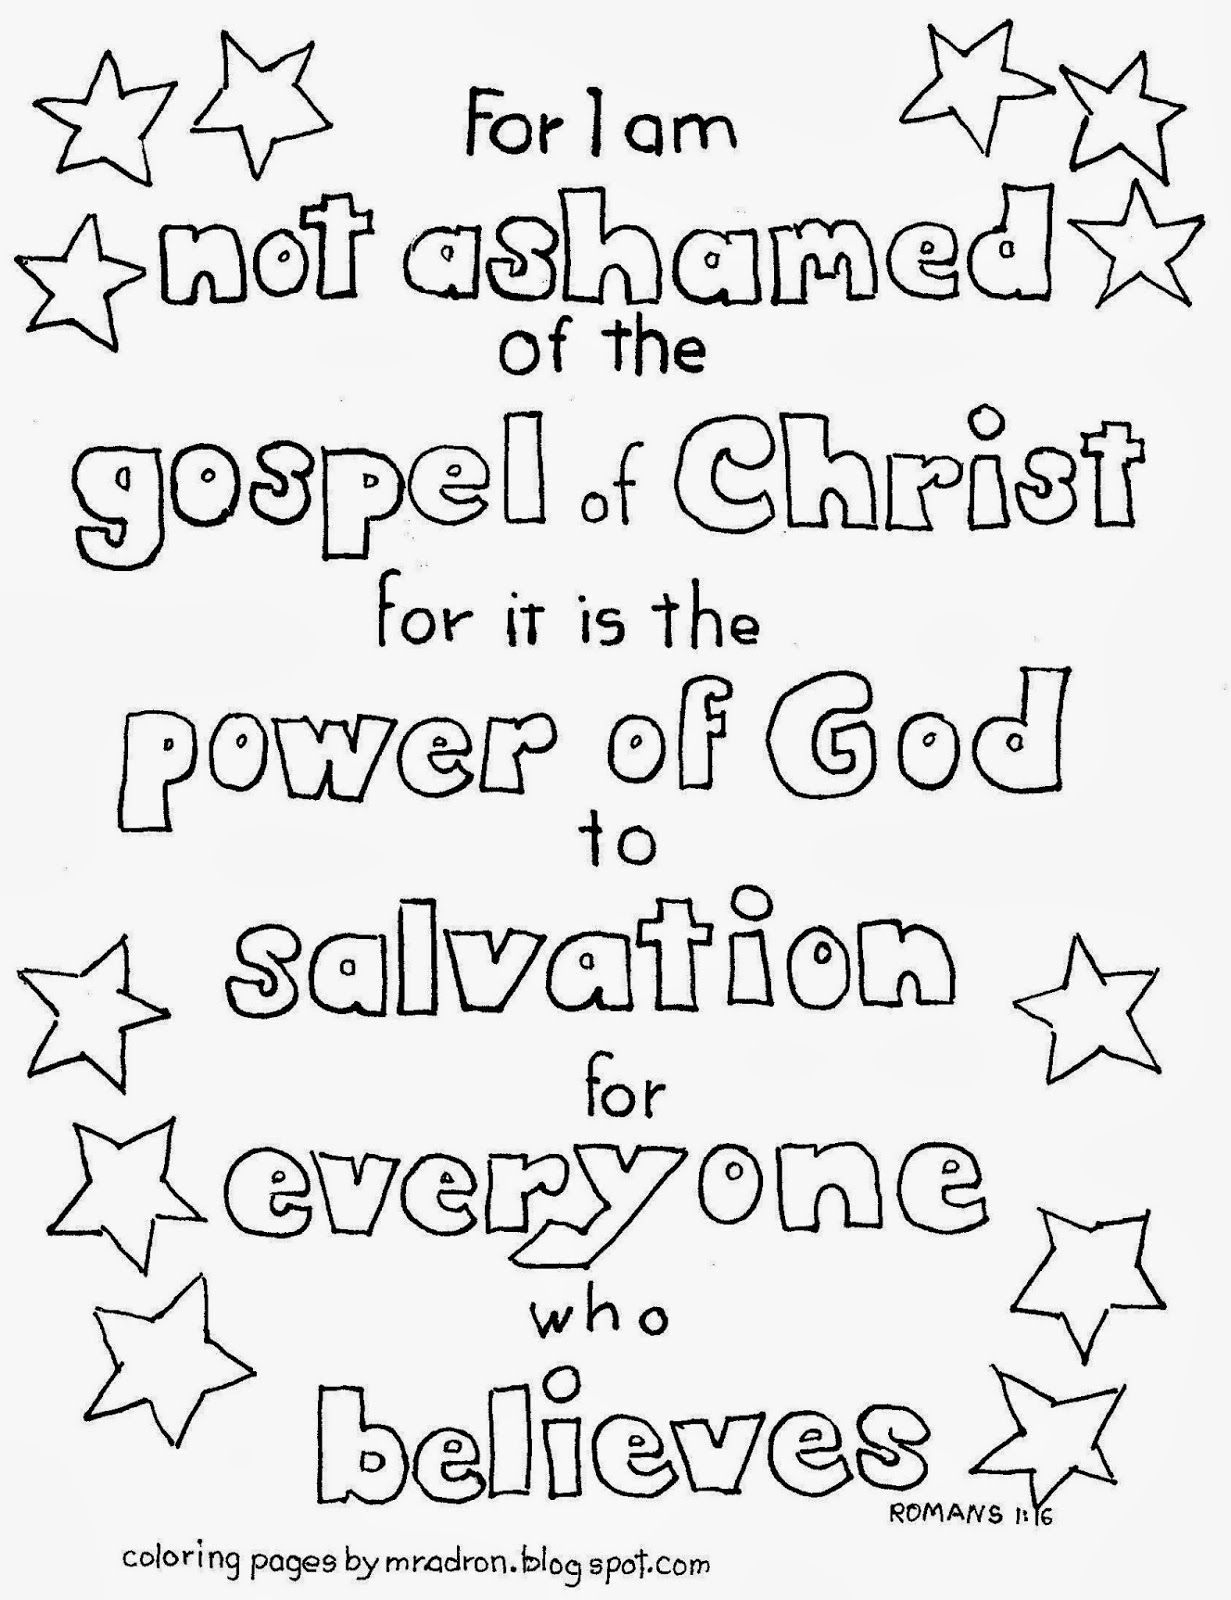 Adult Top Gospel Coloring Pages Gallery Images beauty 1000 images about sunday school on pinterest armor of god coloring pages and word search puzzles gallery images